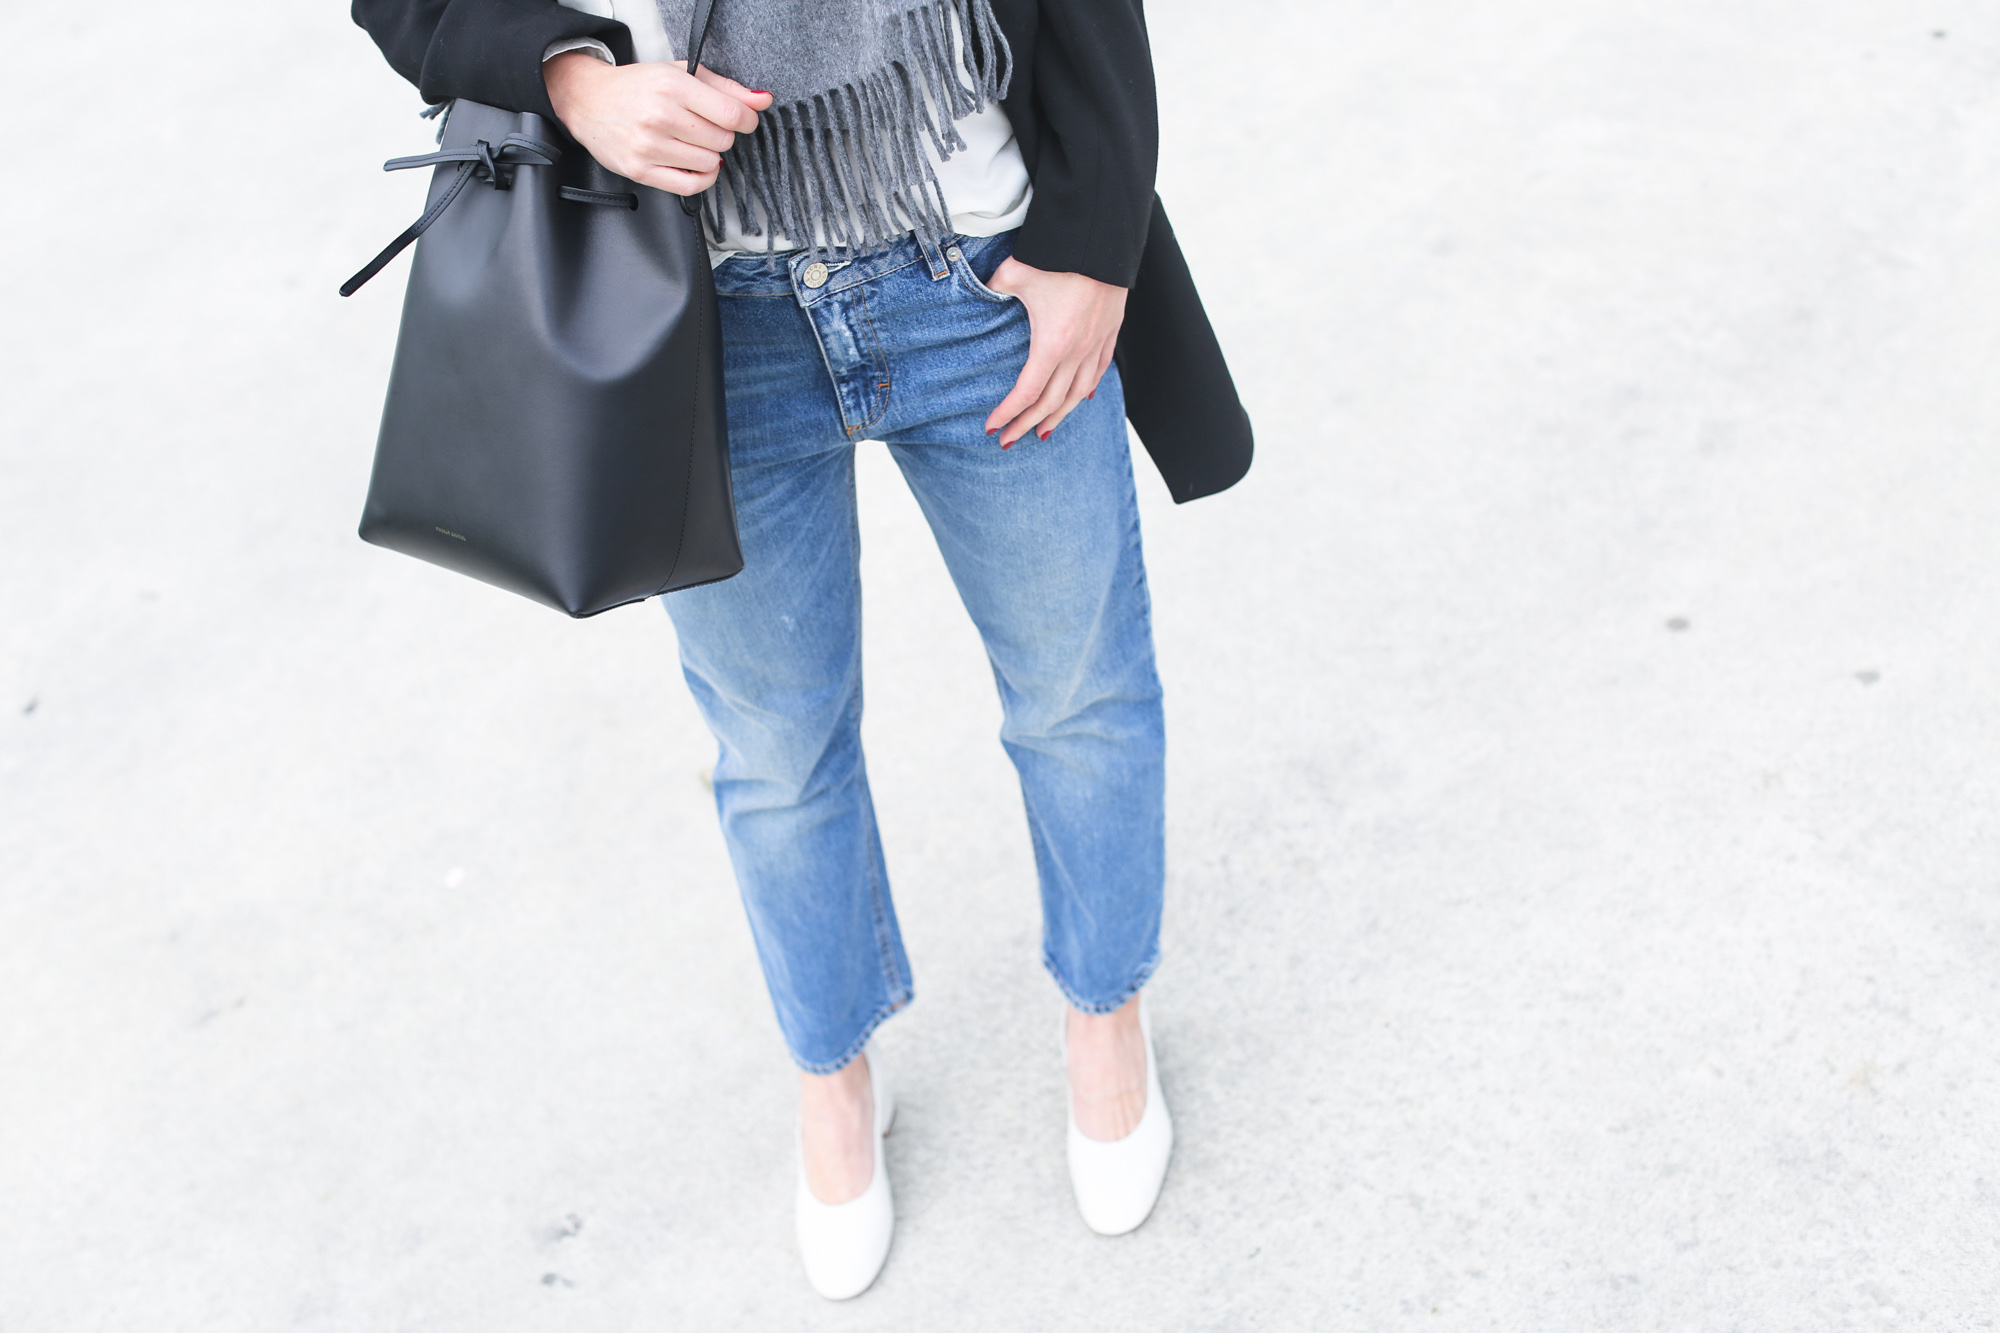 clochet_streetstyle_acnestudios_pop_jeans_mansurgavriel_bucket_bag_granny_shoes-14